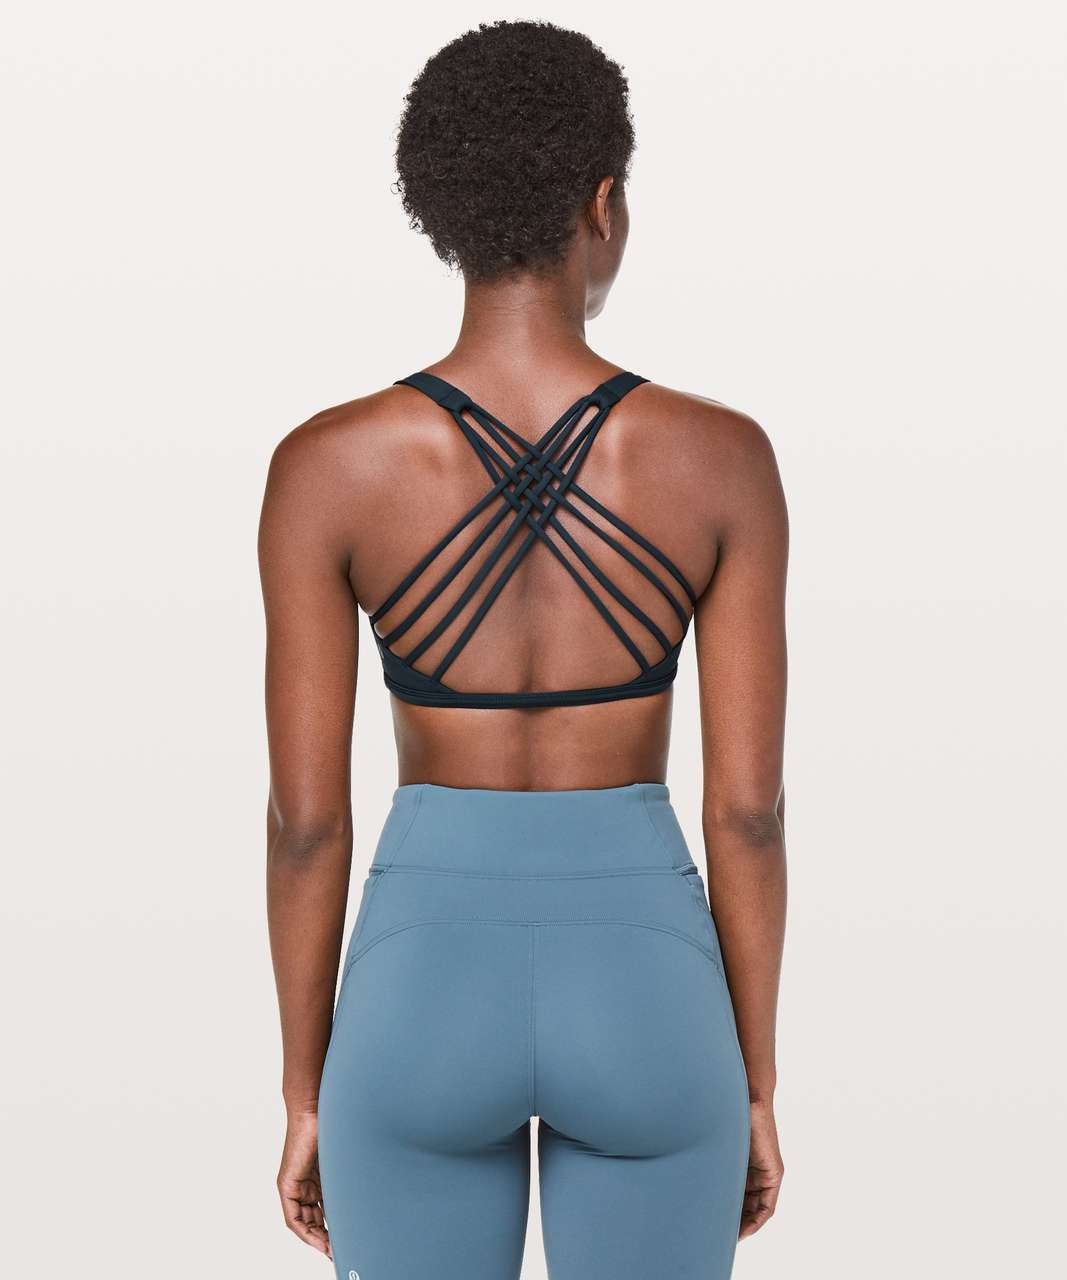 Lululemon Free To Be Bra (Wild) - Nocturnal Teal